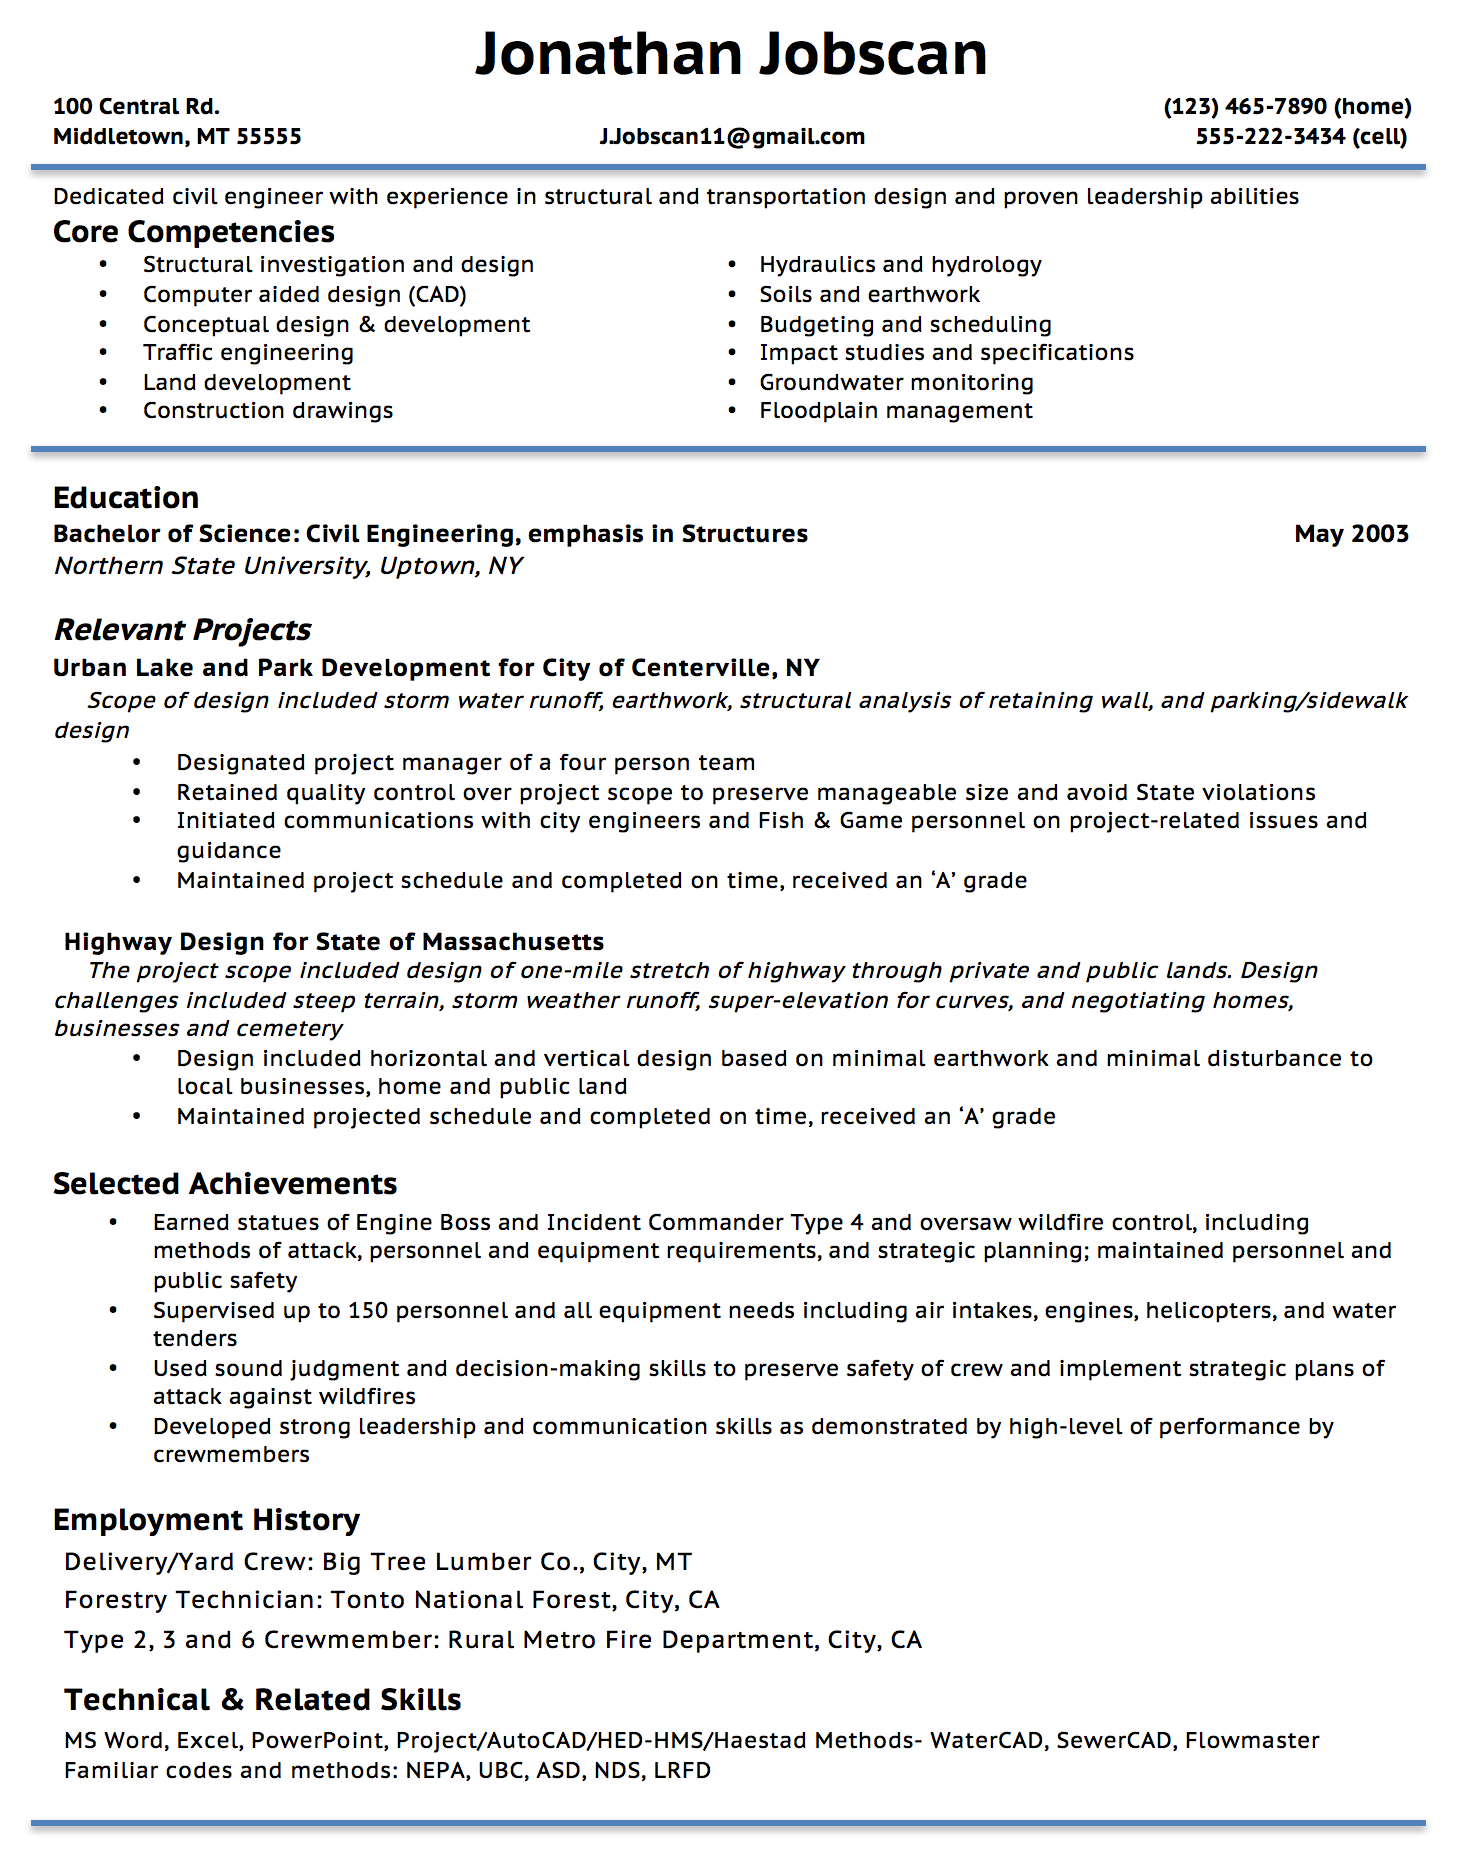 Opposenewapstandardsus  Ravishing Resume Writing Guide  Jobscan With Lovely Example Of A Functional Resume Format With Cute Career Objective On Resume Also Reverse Chronological Resume In Addition How Long Should Your Resume Be And Good Resumes Examples As Well As Best Font Size For Resume Additionally Teaching Resume Examples From Jobscanco With Opposenewapstandardsus  Lovely Resume Writing Guide  Jobscan With Cute Example Of A Functional Resume Format And Ravishing Career Objective On Resume Also Reverse Chronological Resume In Addition How Long Should Your Resume Be From Jobscanco